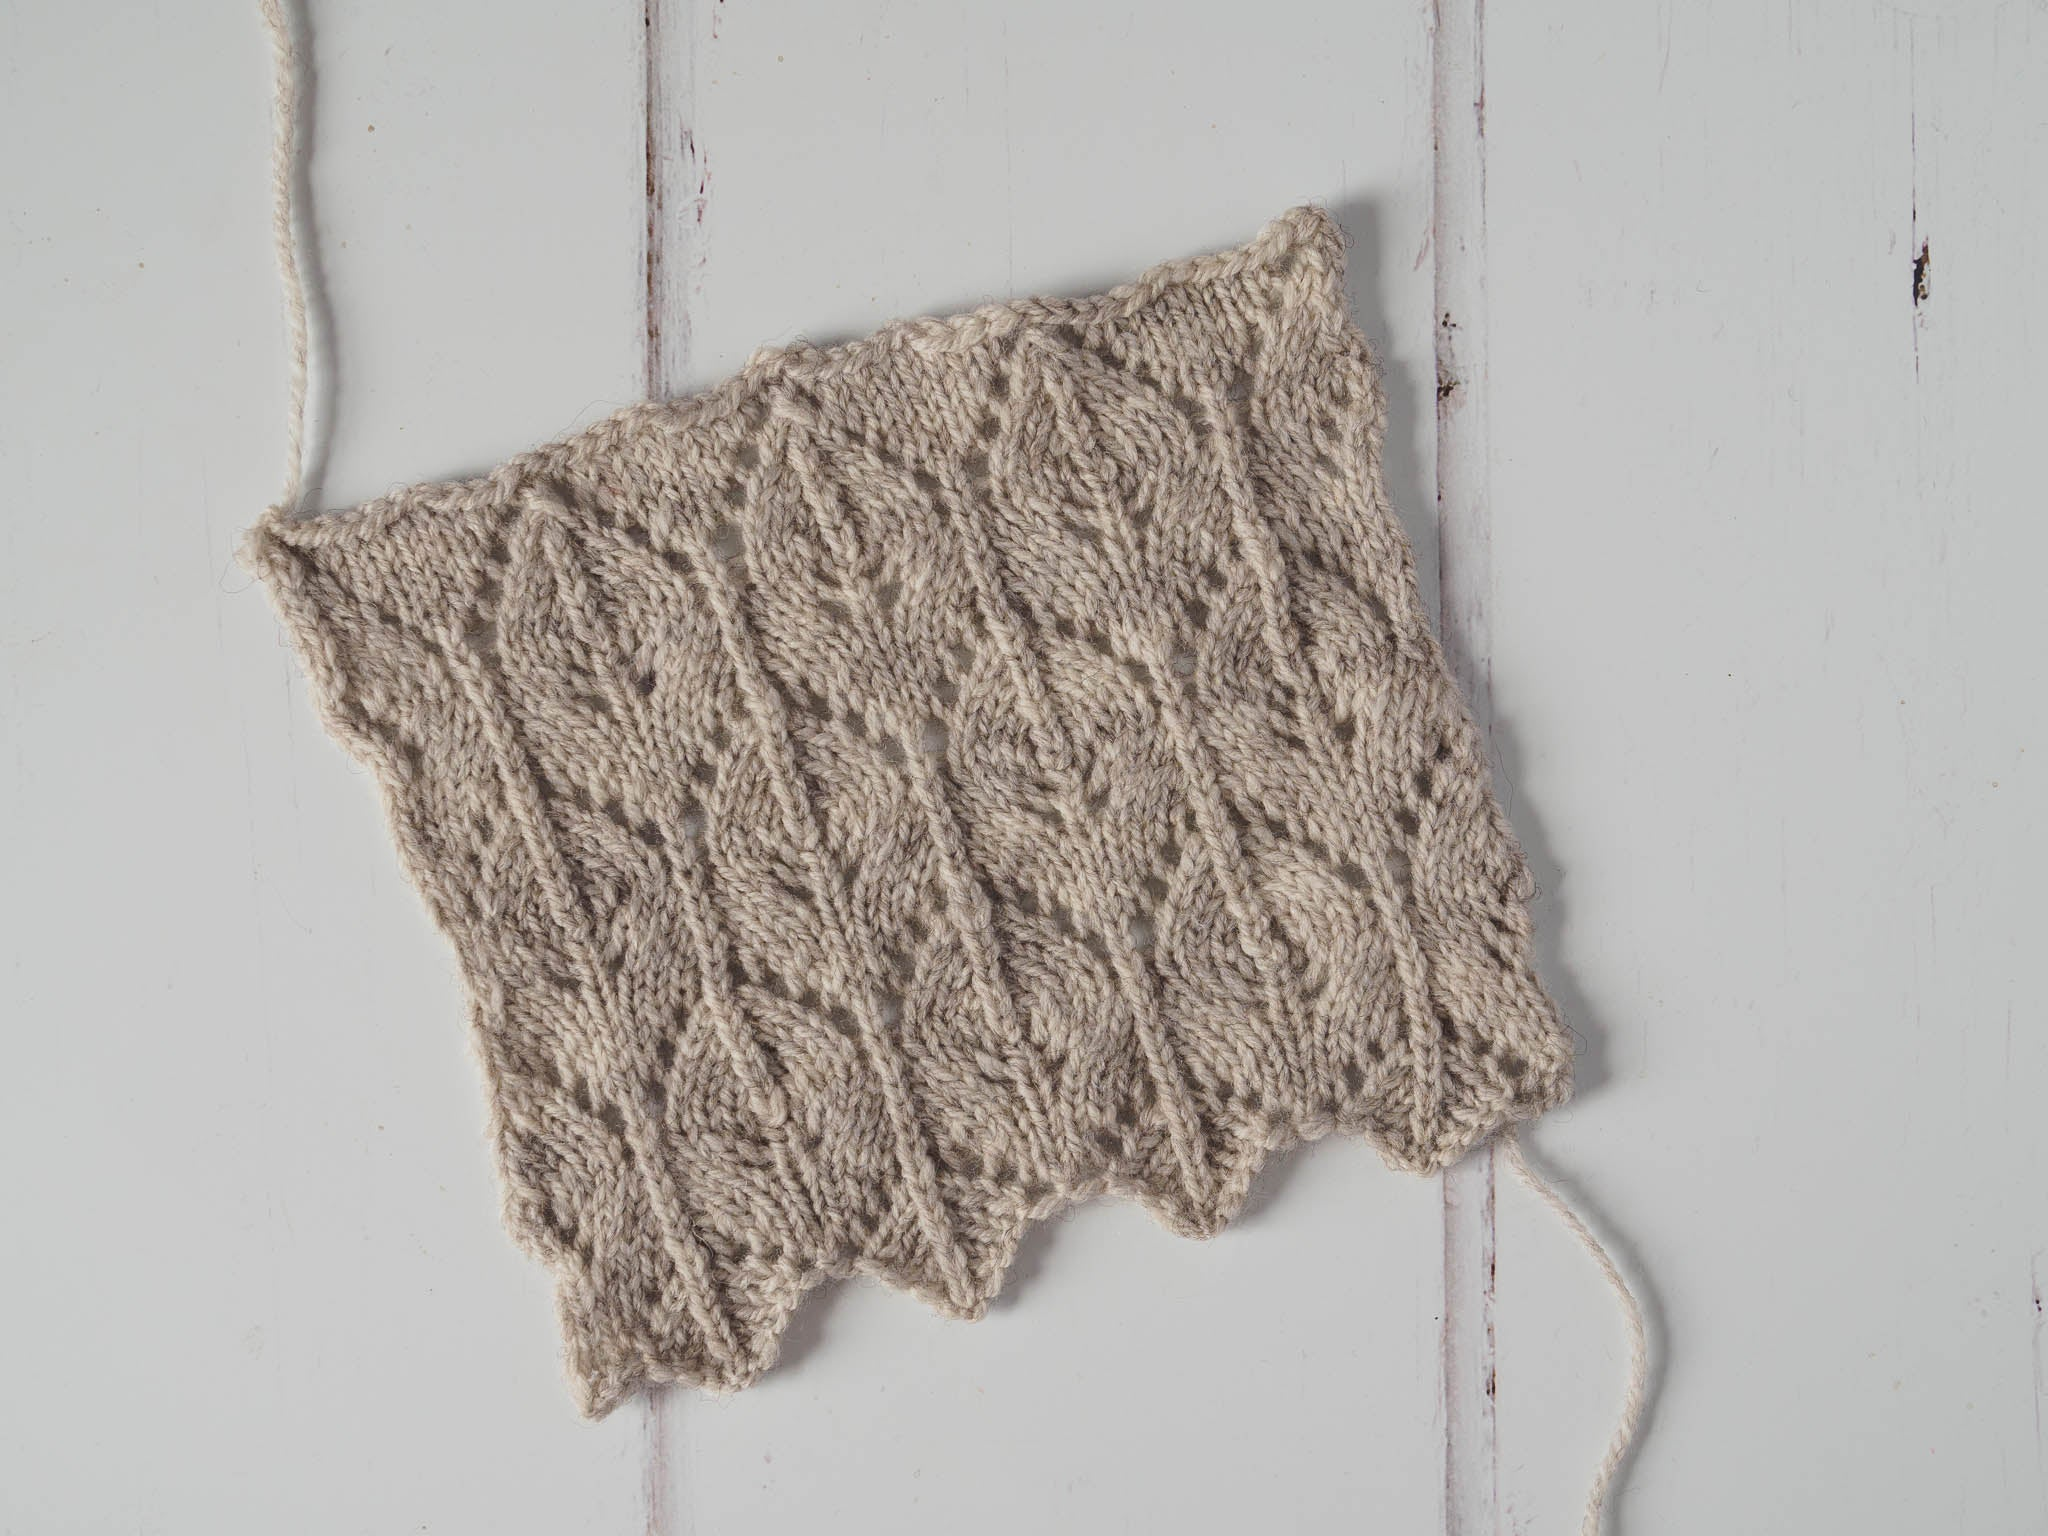 A lace swatch in cream laying flat on a white wooden surface.